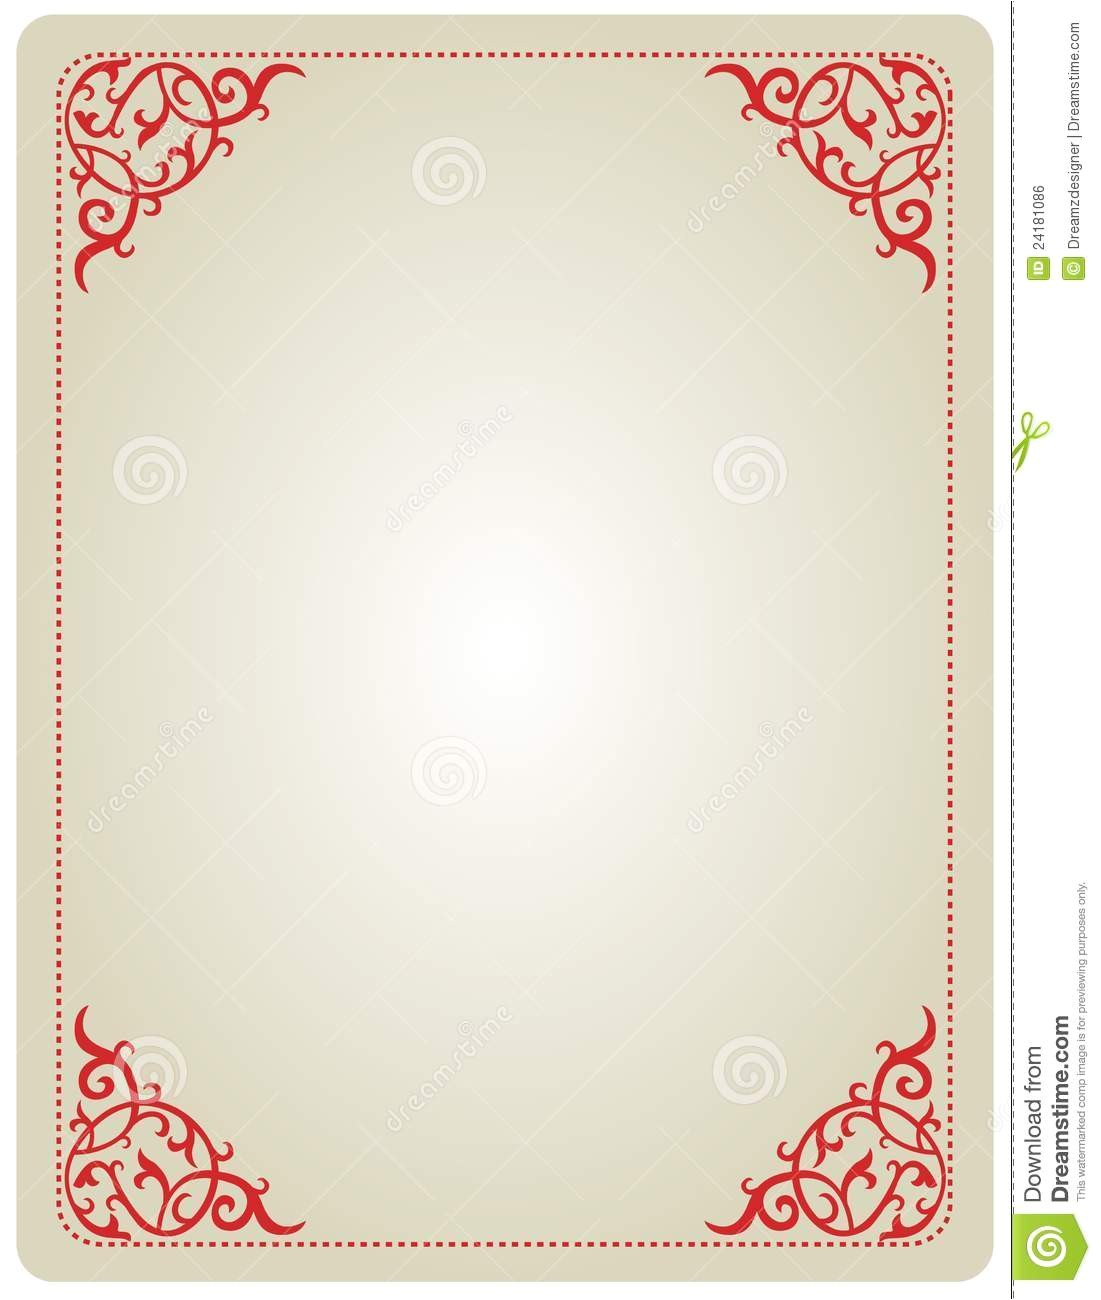 royalty free stock image ornamental invitation frame image24181086